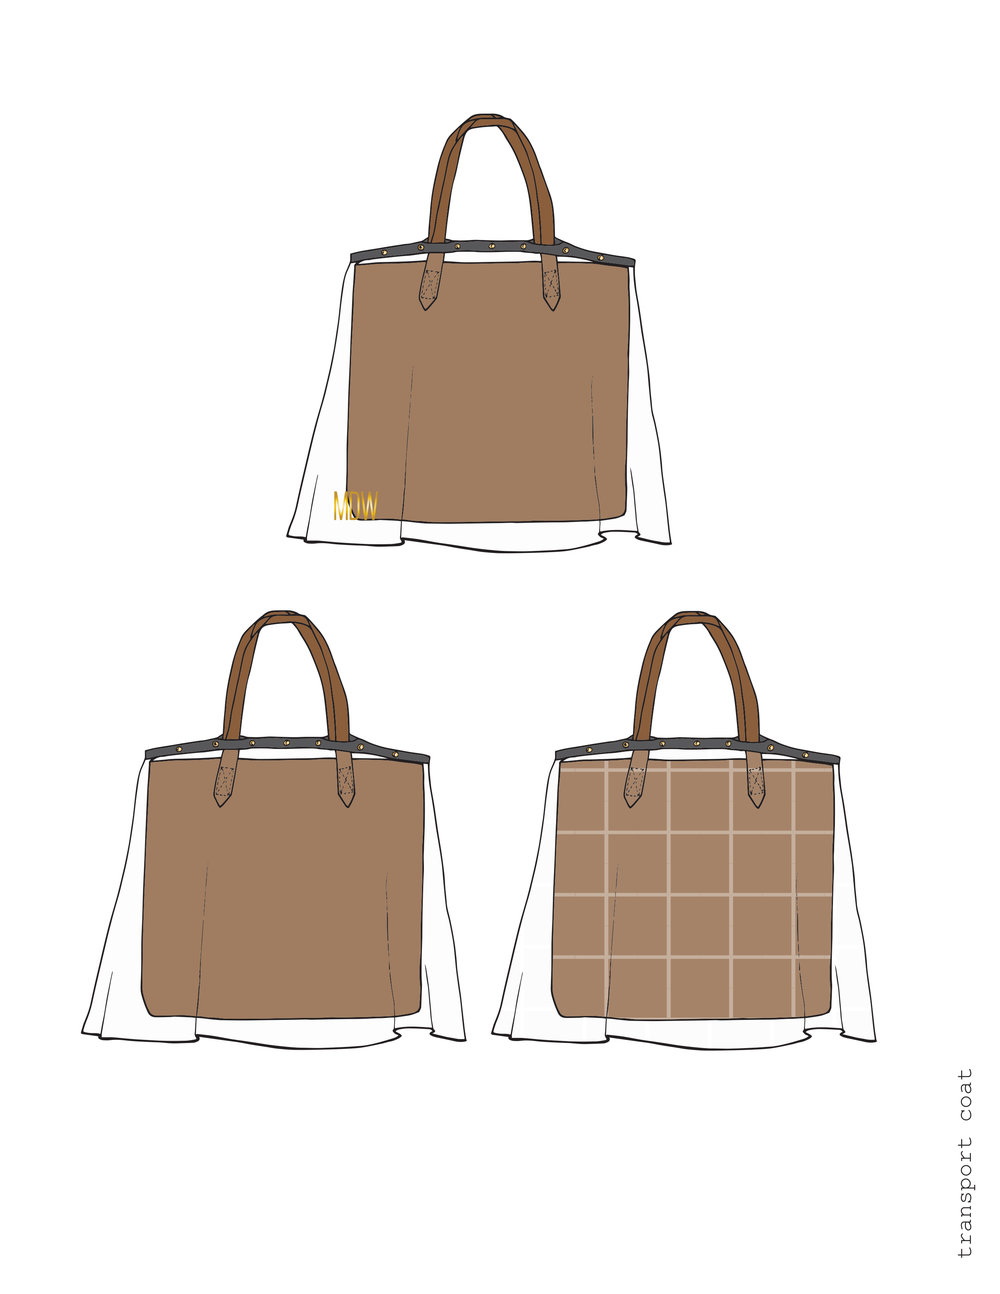 bags + Accessories - + sketches+ tech packs/development cards+ CADS